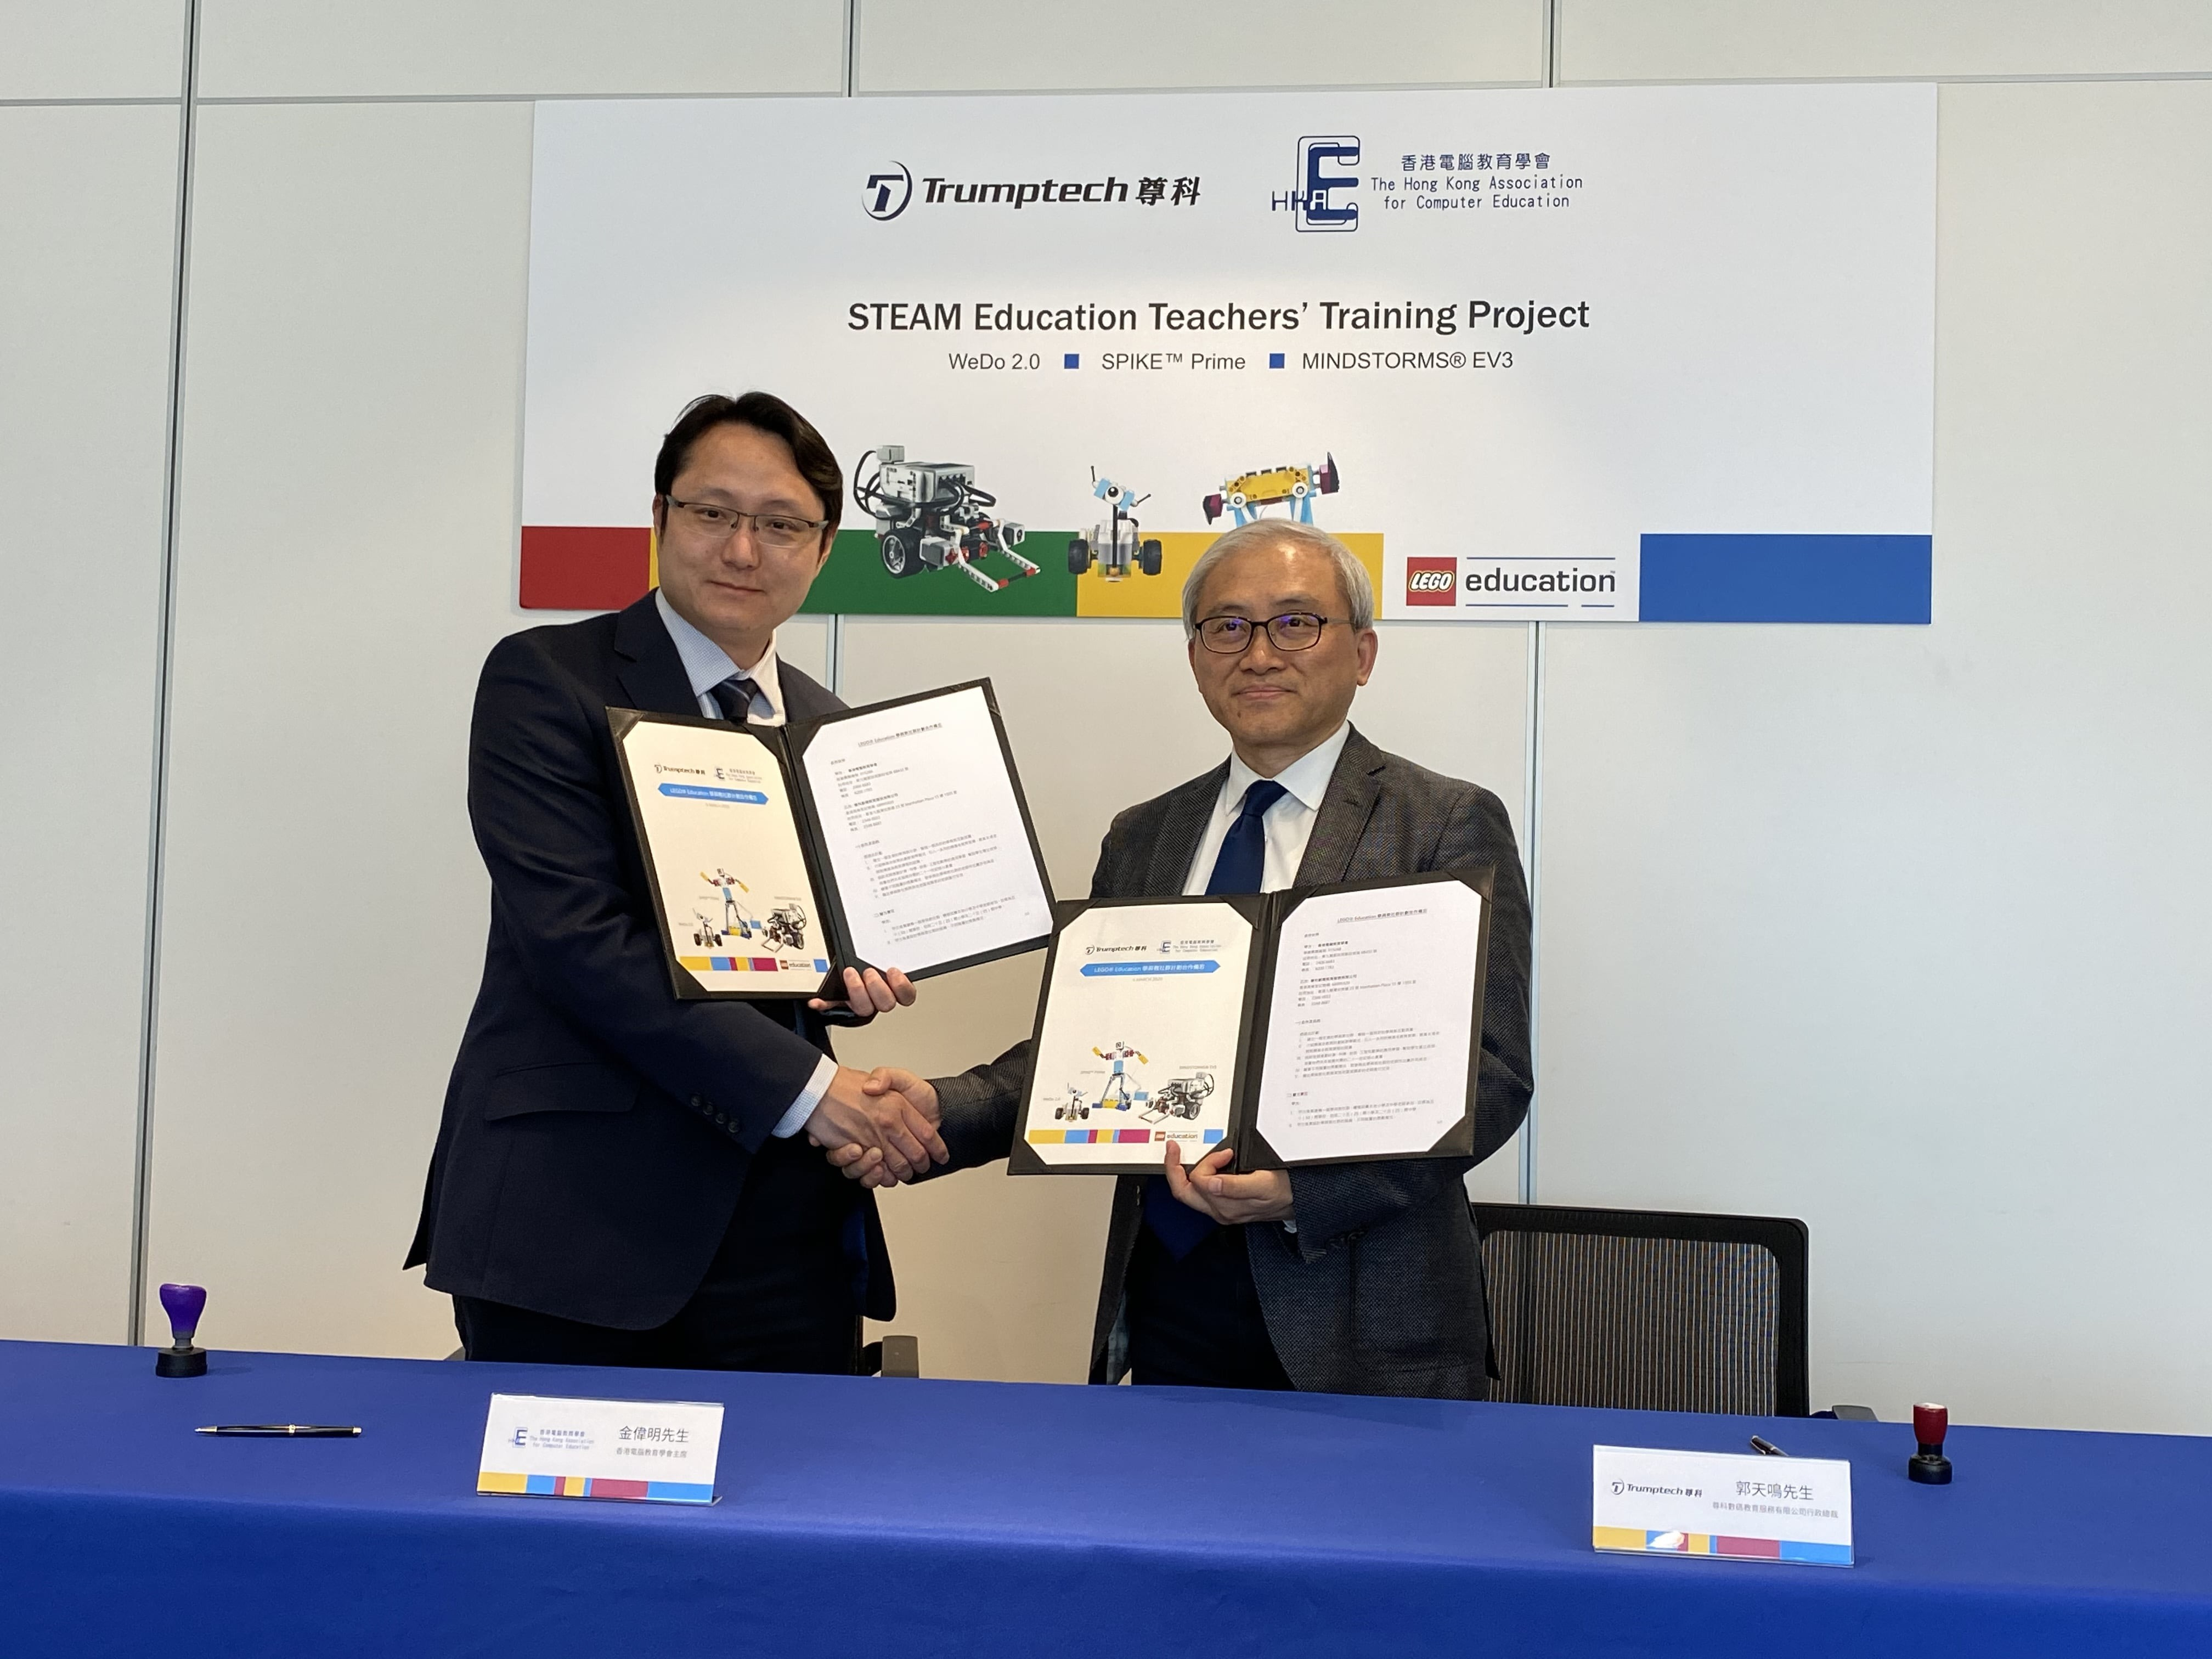 LEGO education Trumptech x HKACE partnership